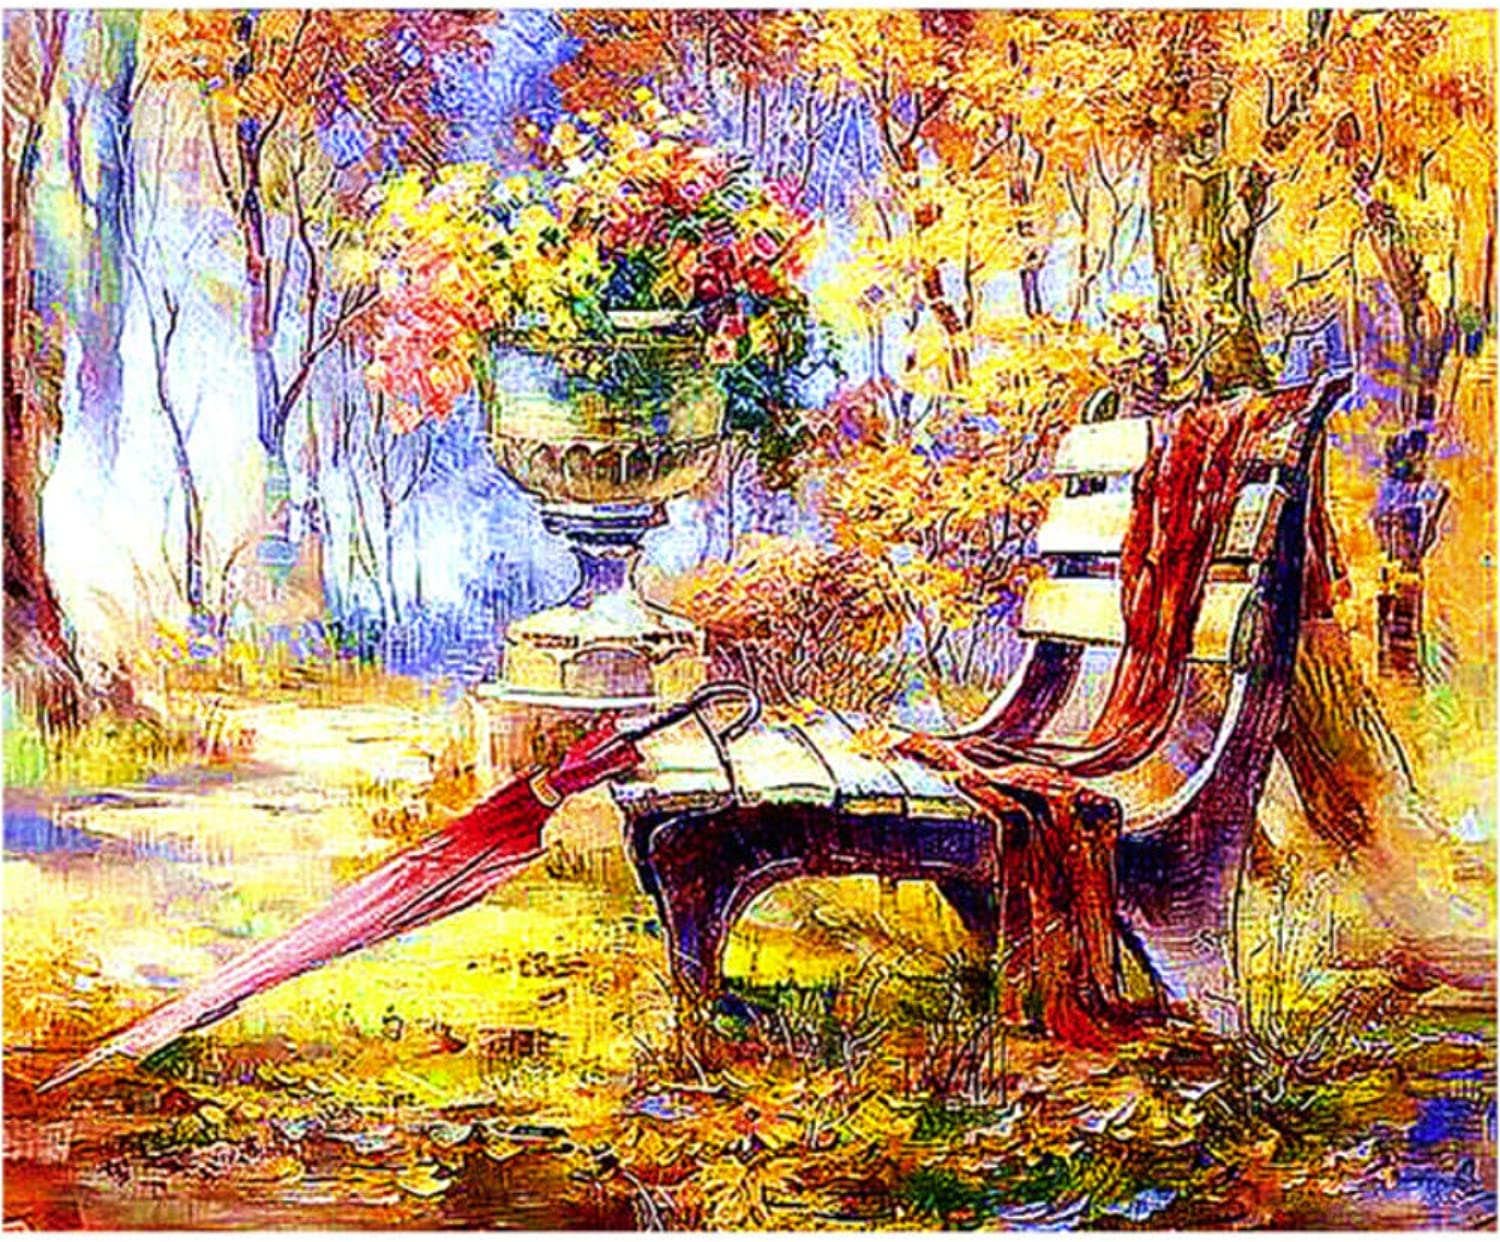 Park Bench Painting Full Highlight Diamond Needlework 5D DIY Diamond Painting Cross Stitch Embroidery Landscape,45x60cm